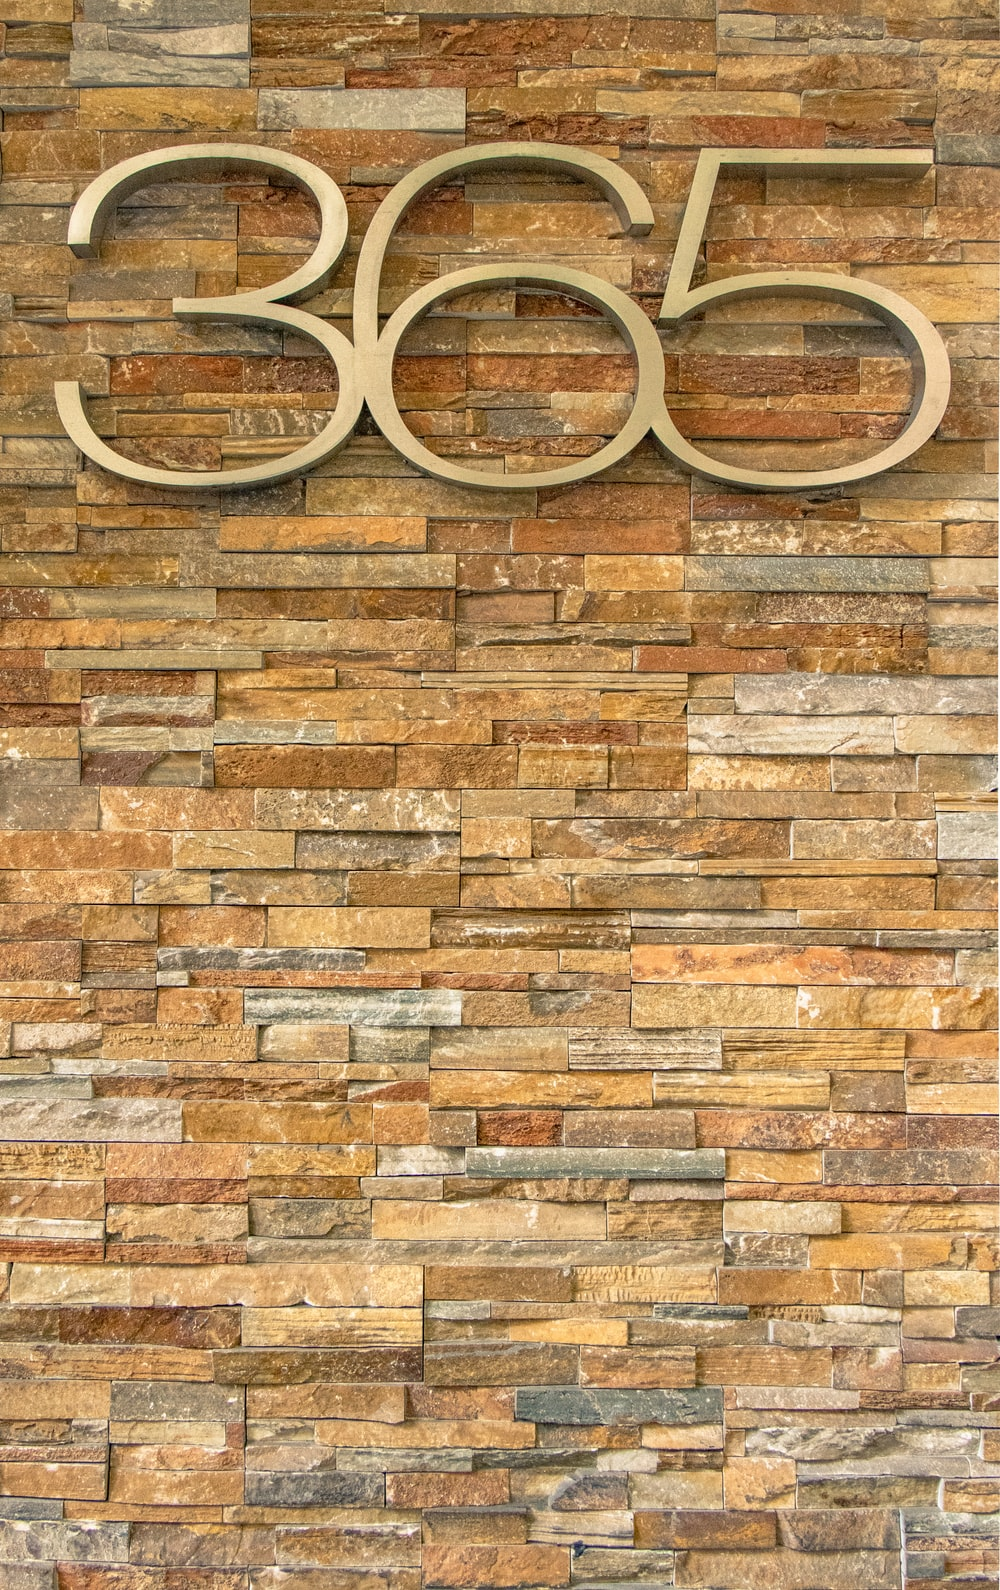 365 cutout number on brick wall